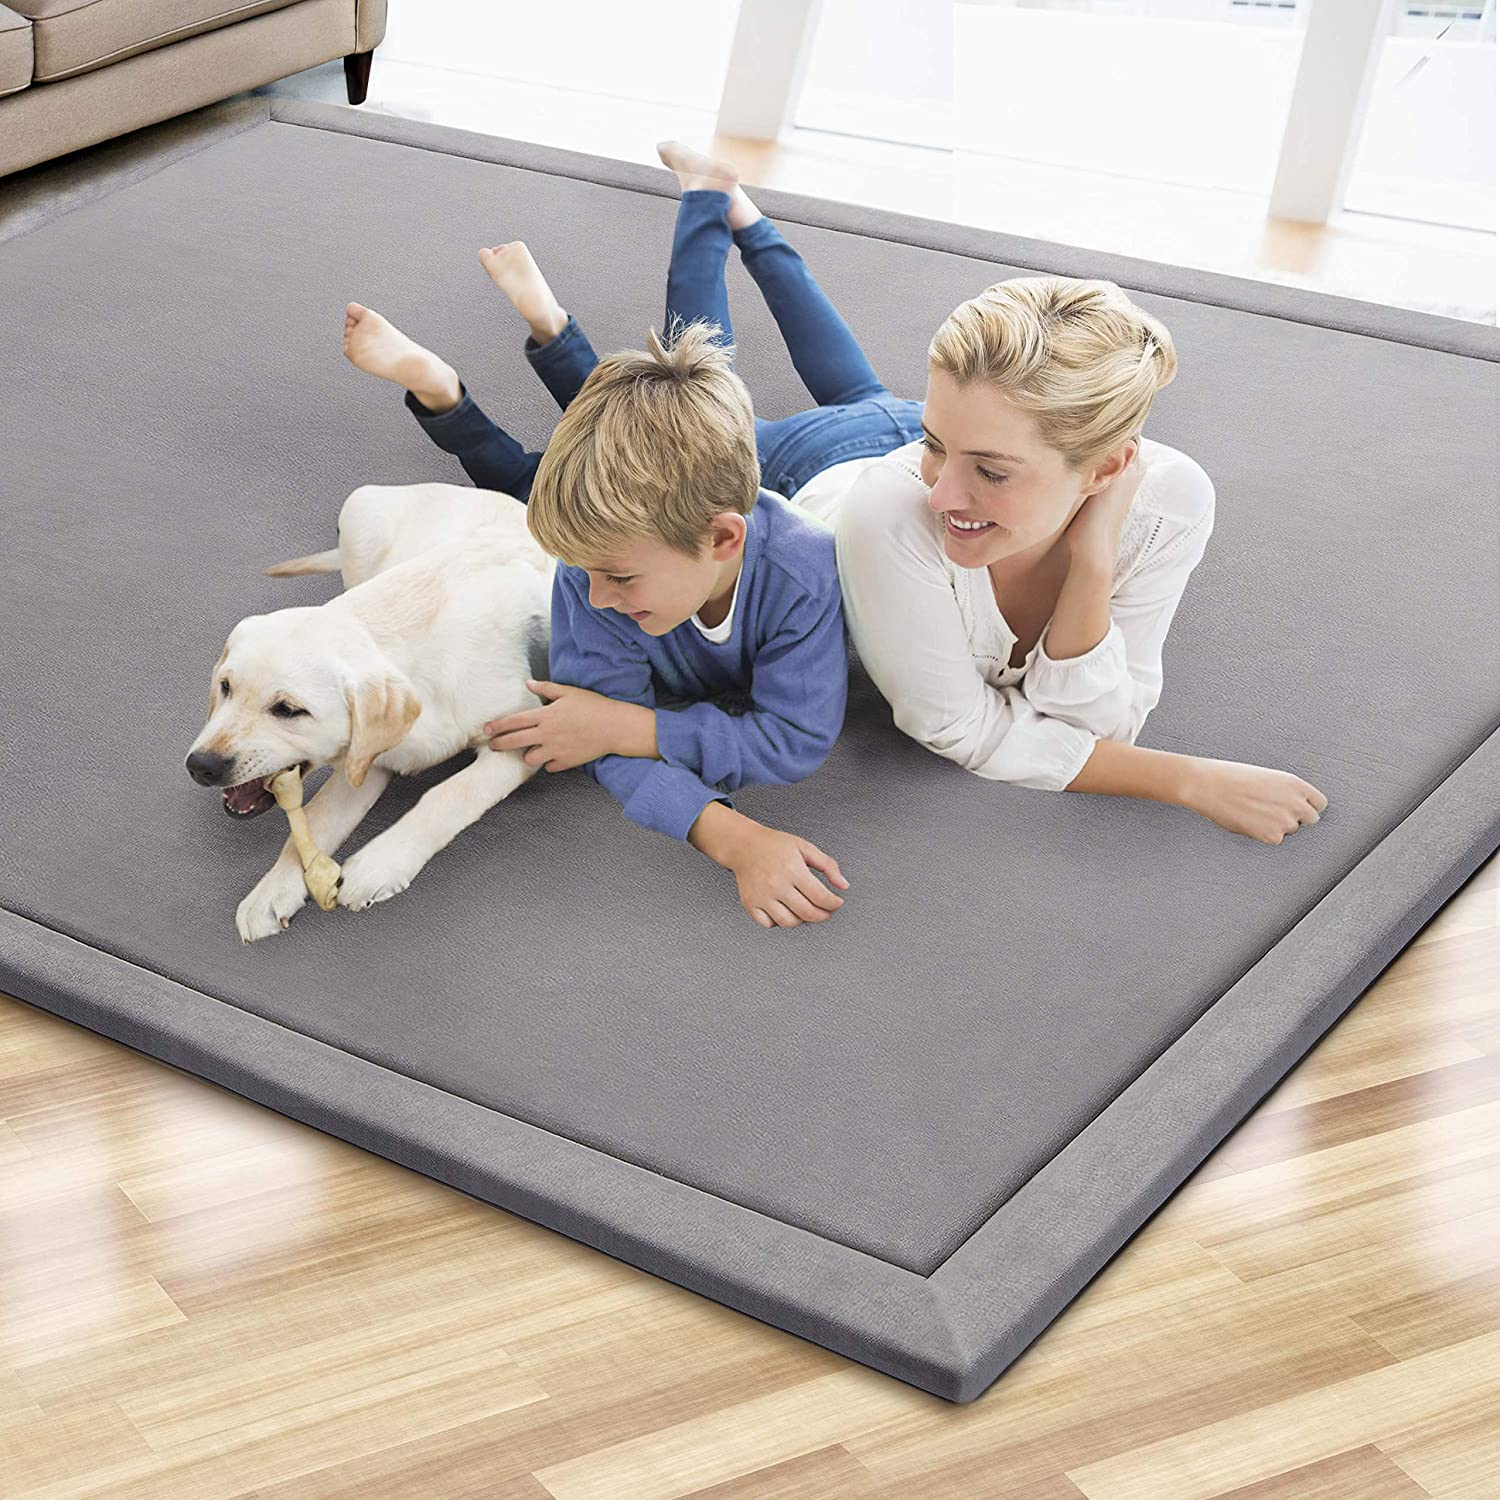 MICRODRY Cushioned Modern Memory Foam Area Rug with Built in Rug Pad – Easy Clean – Durable Stain & Fade Resistant Luxury Carpet – Home Decor Floor Covering – Living Room Mat (Grey, 6'x8')